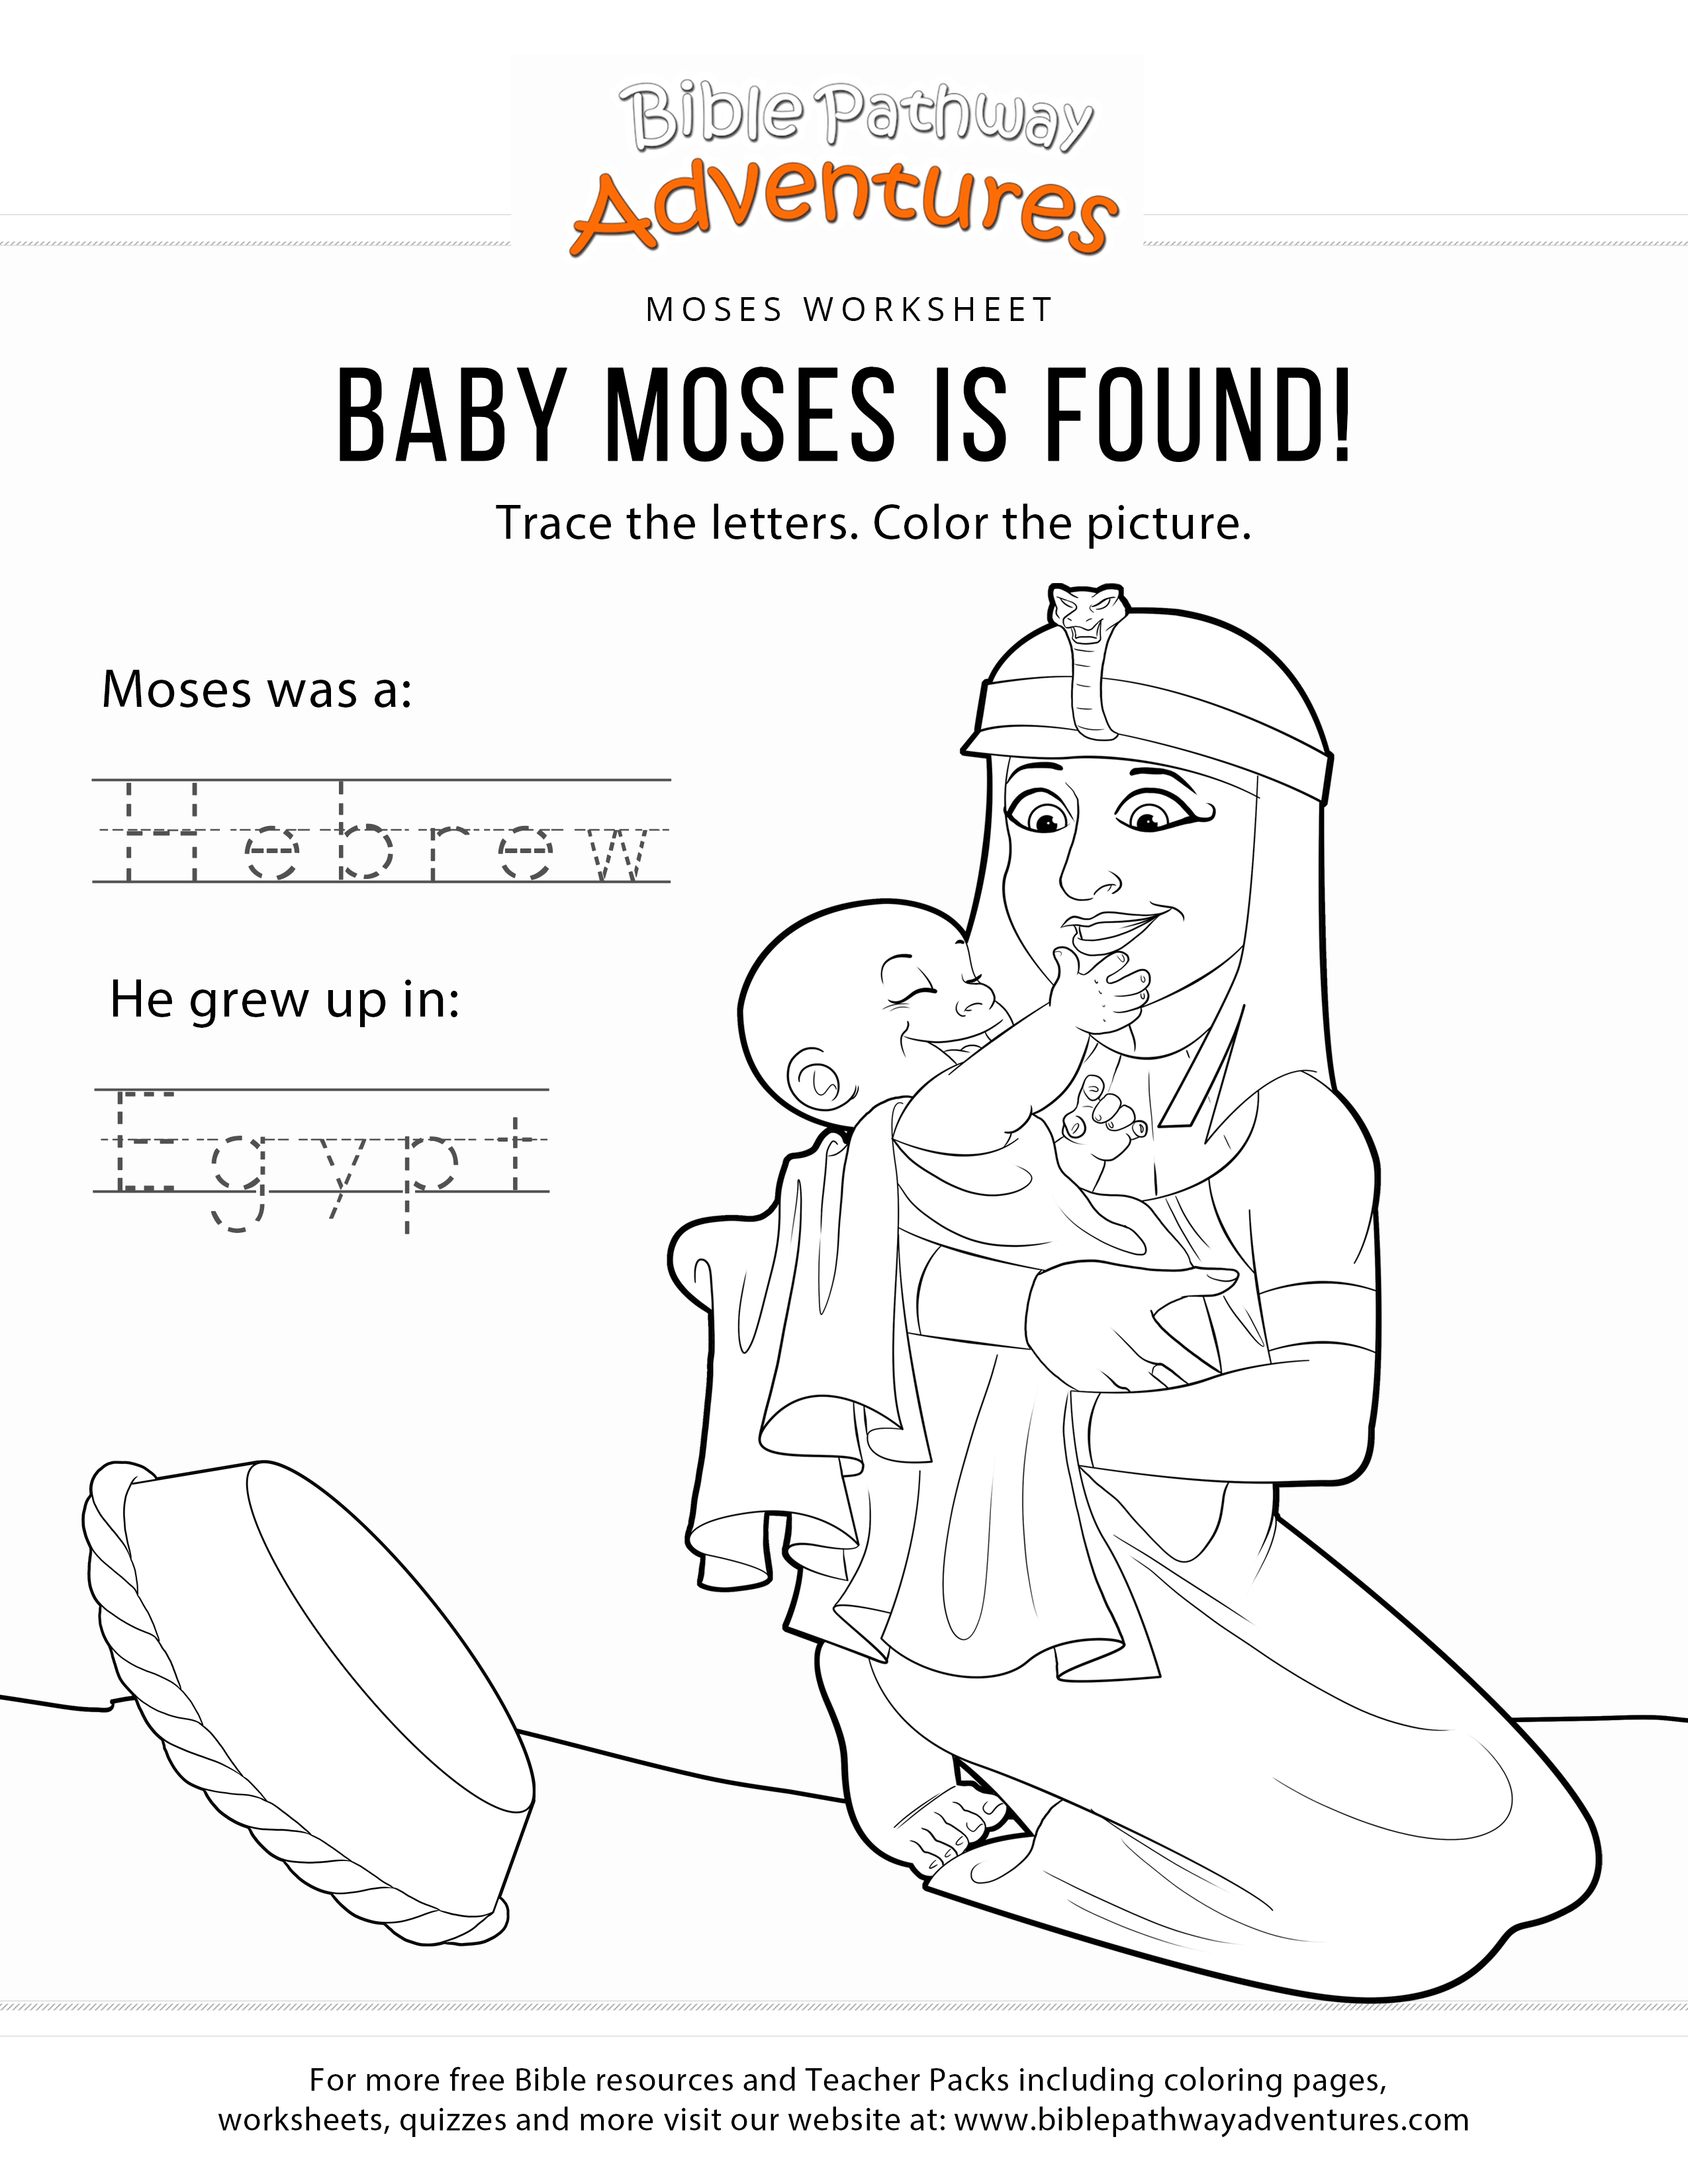 Baby Moses In Found Worksheet